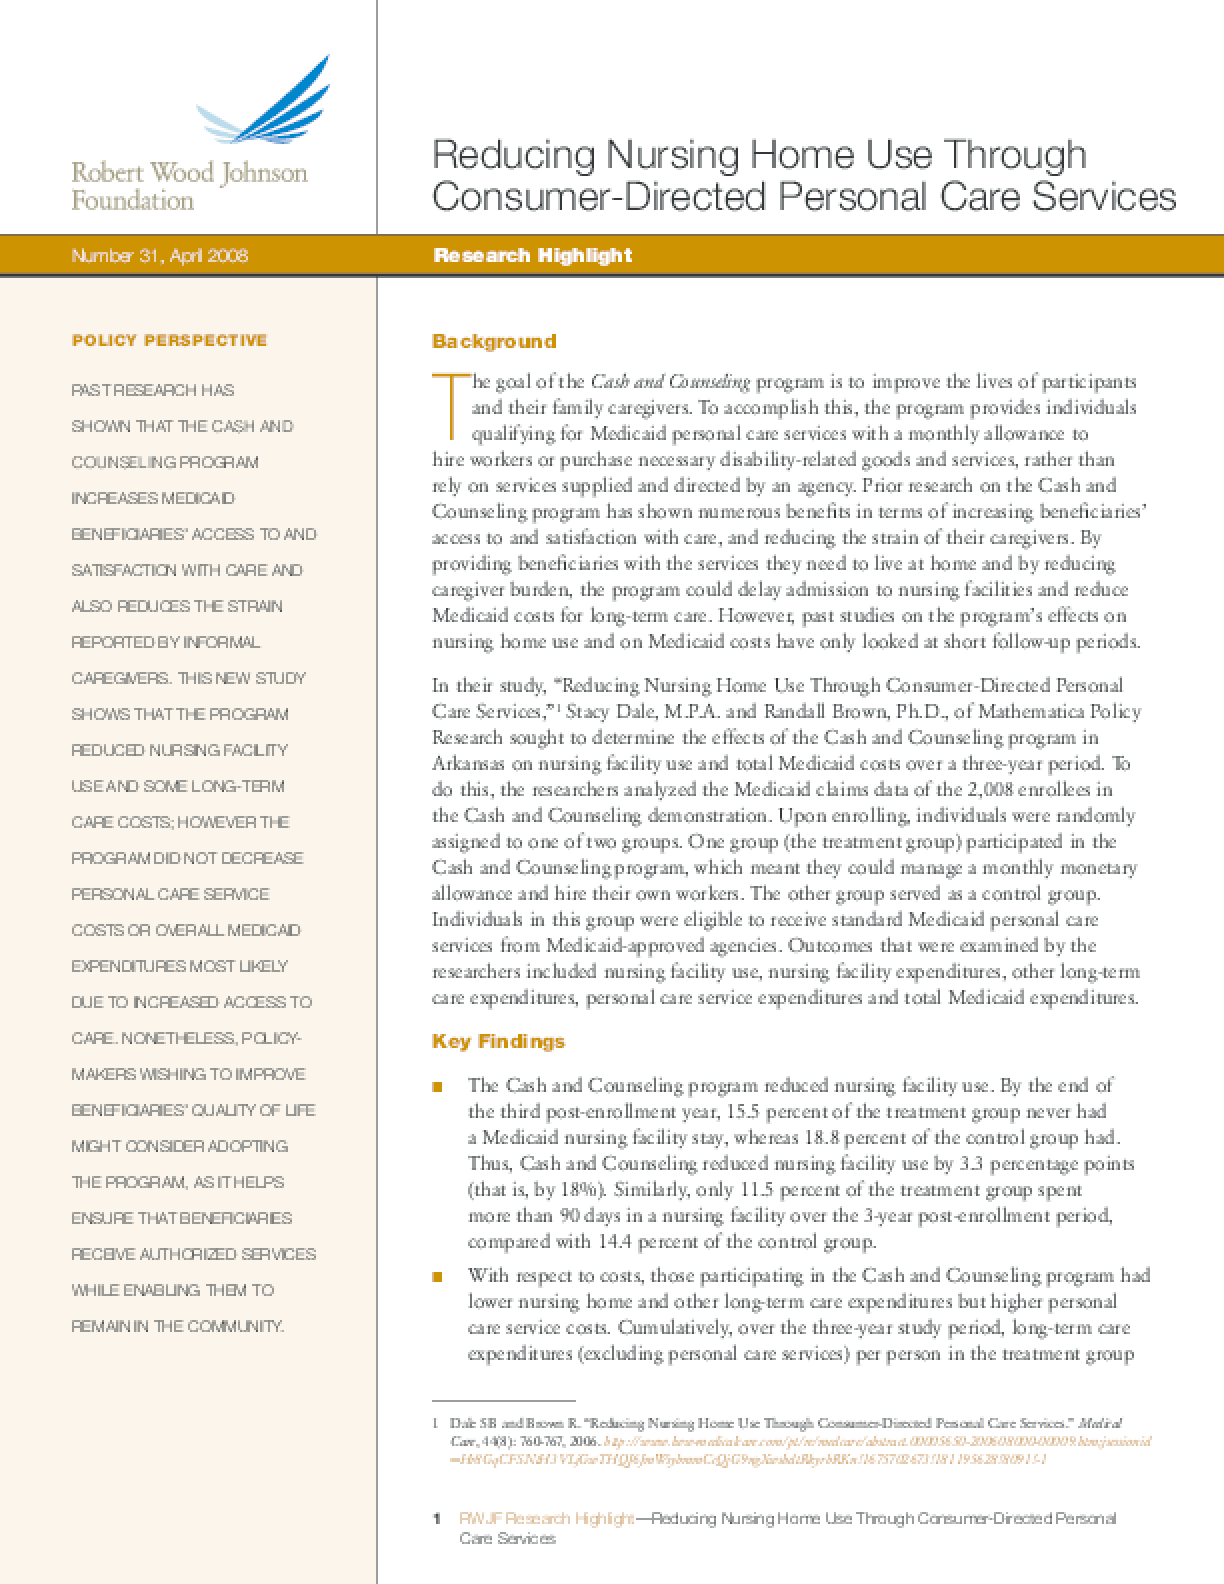 Reducing Nursing Home Use Through Consumer-Directed Personal Care Services